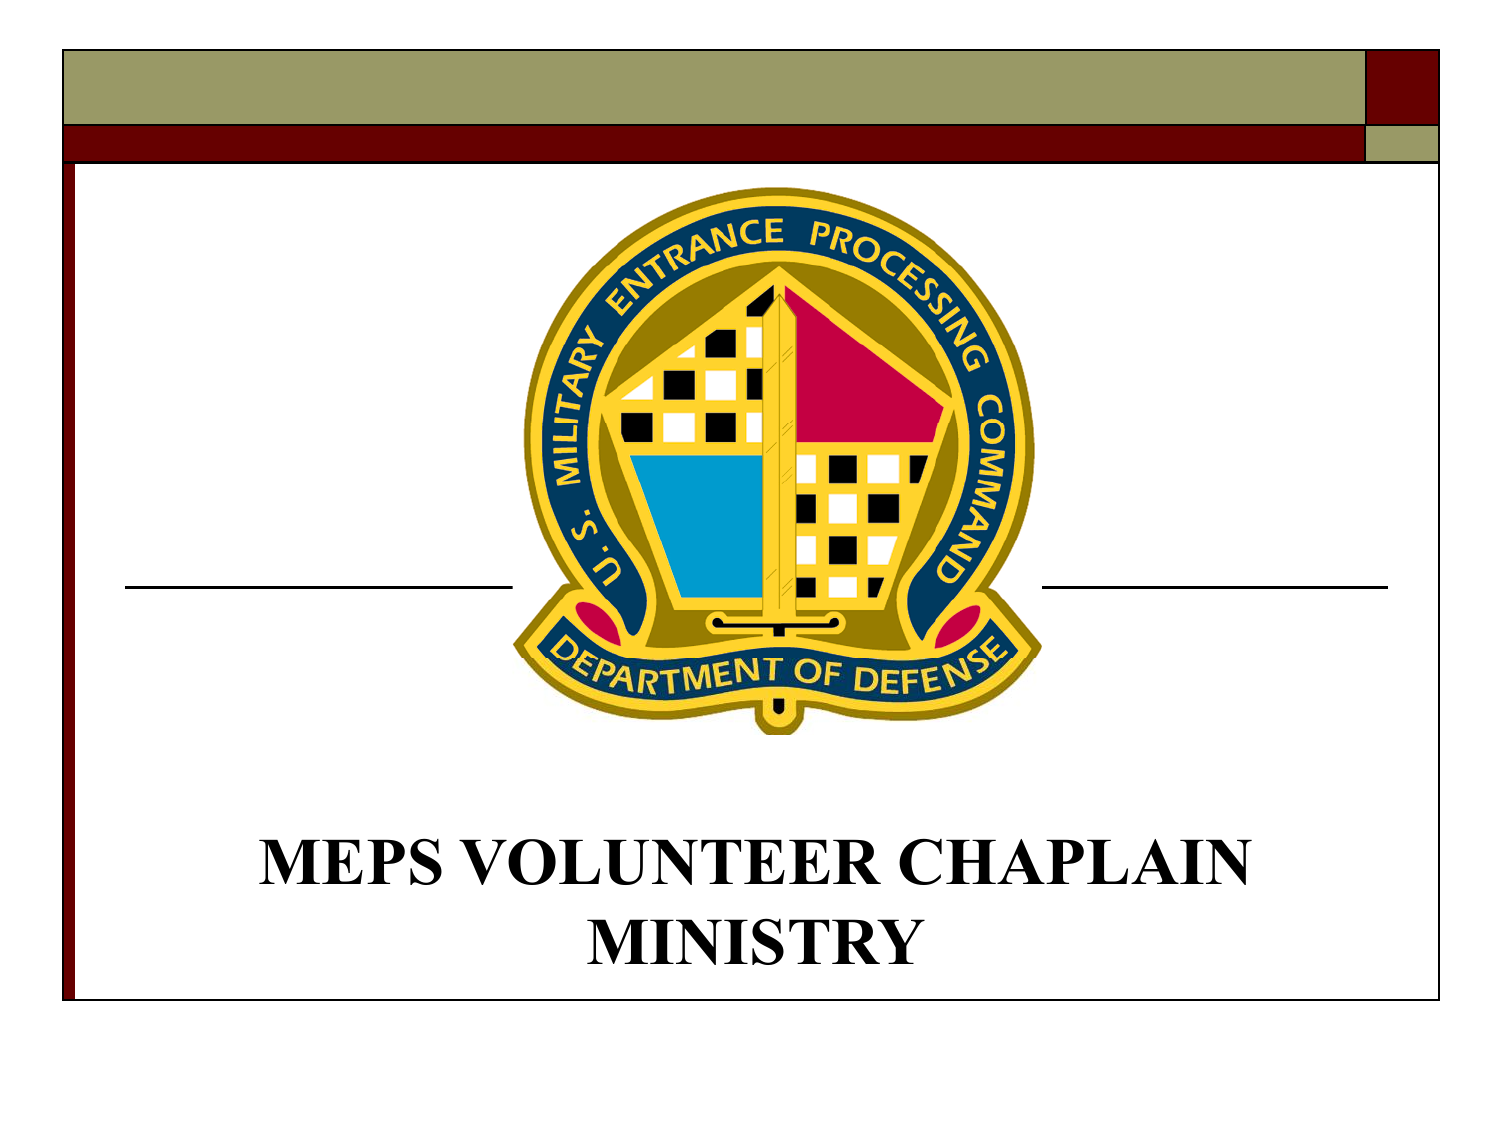 MEPS CHAPLAIN MINISTRY - In Pursuit! Ministries of California